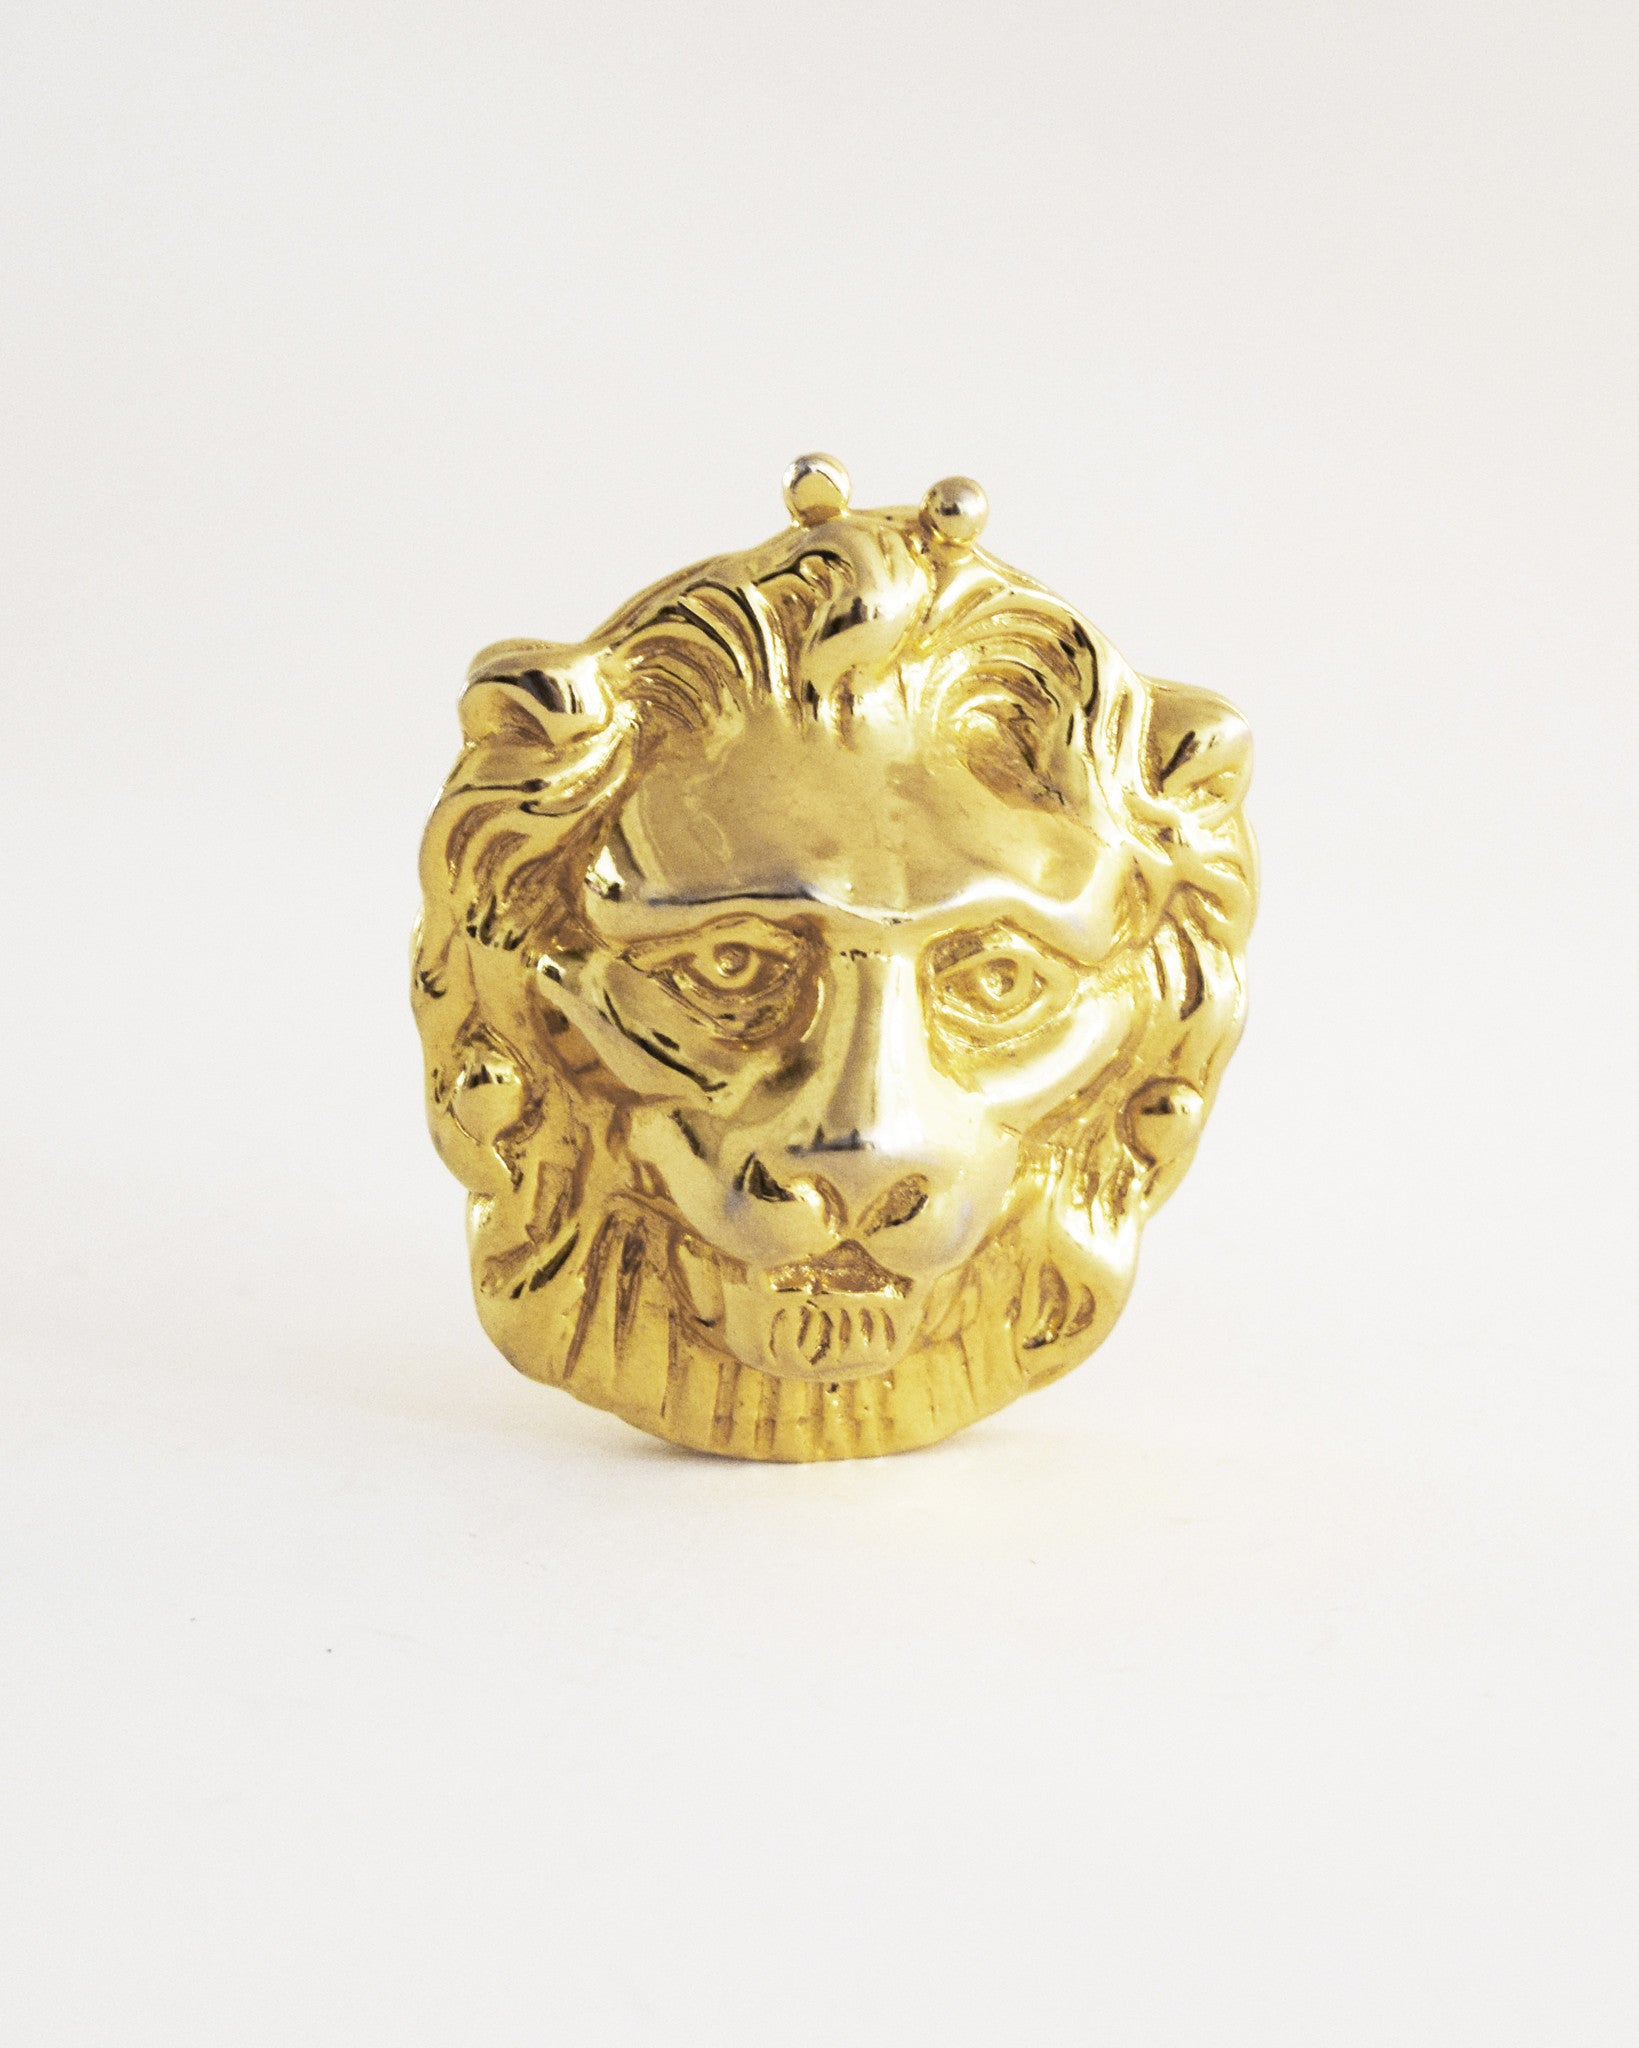 Vintage Cadoro Lion's Head Coin Purse